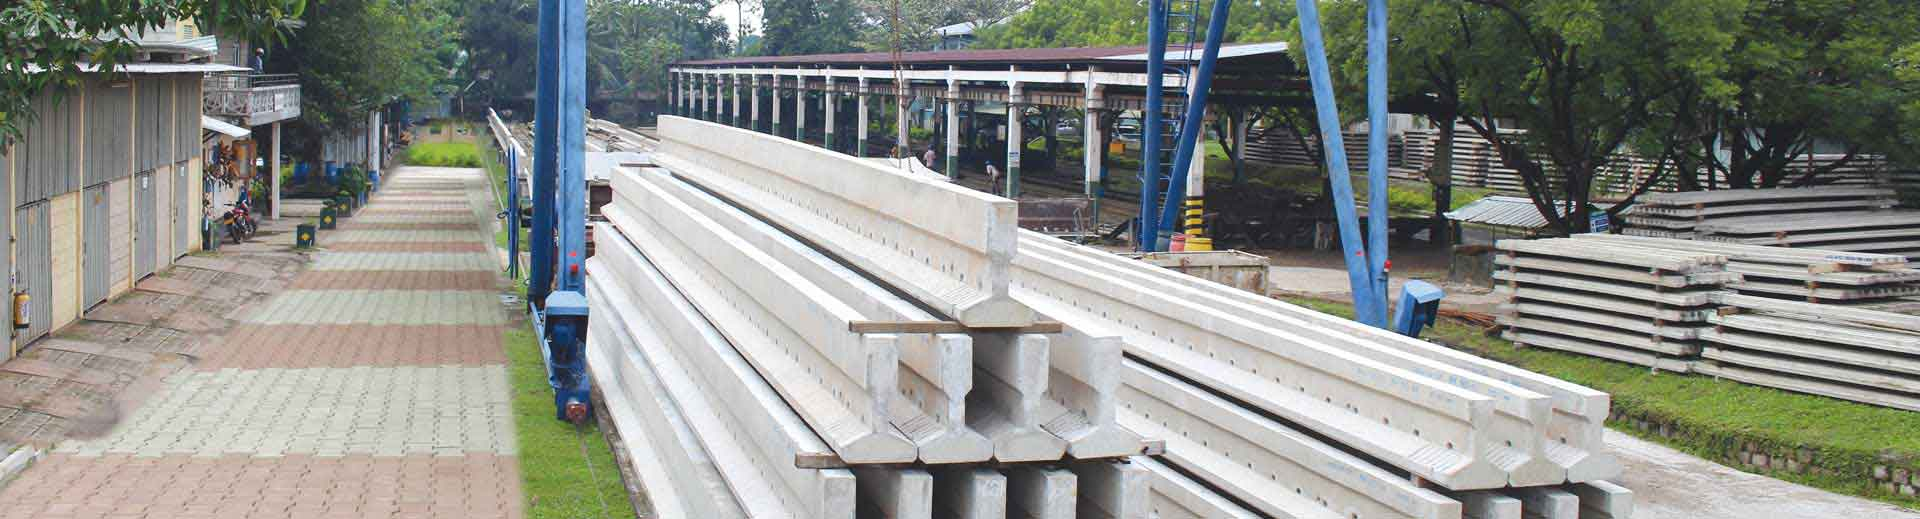 Sensitivity Analysis of Cable Profile of Prestressed Concrete Beams